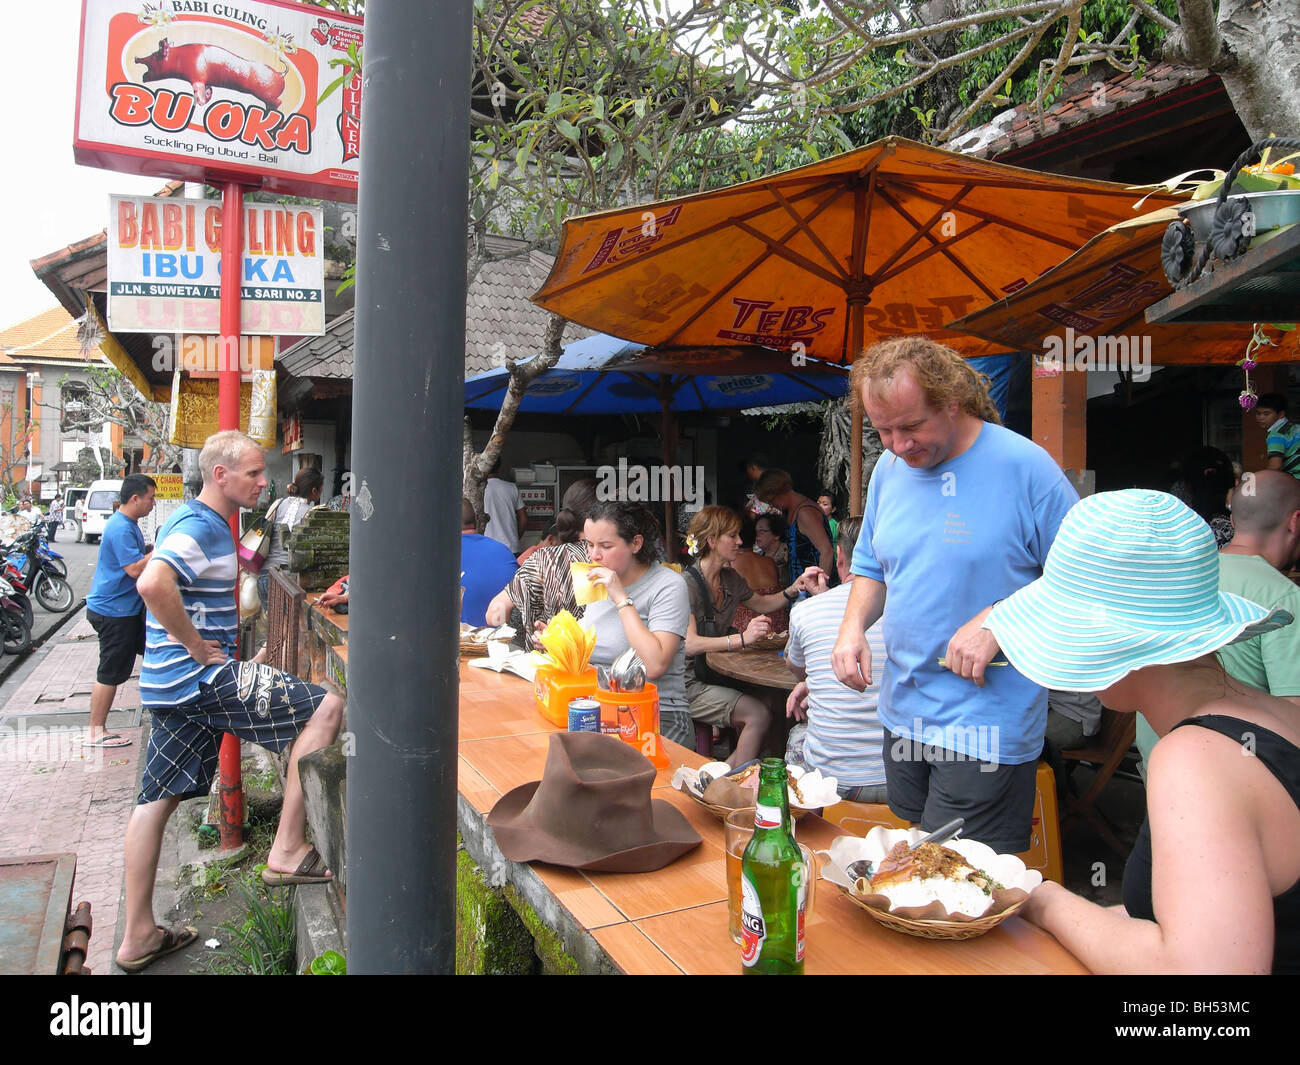 Tourists Eating At Babi Guling Restaurant In Ubud Bali Indonesia